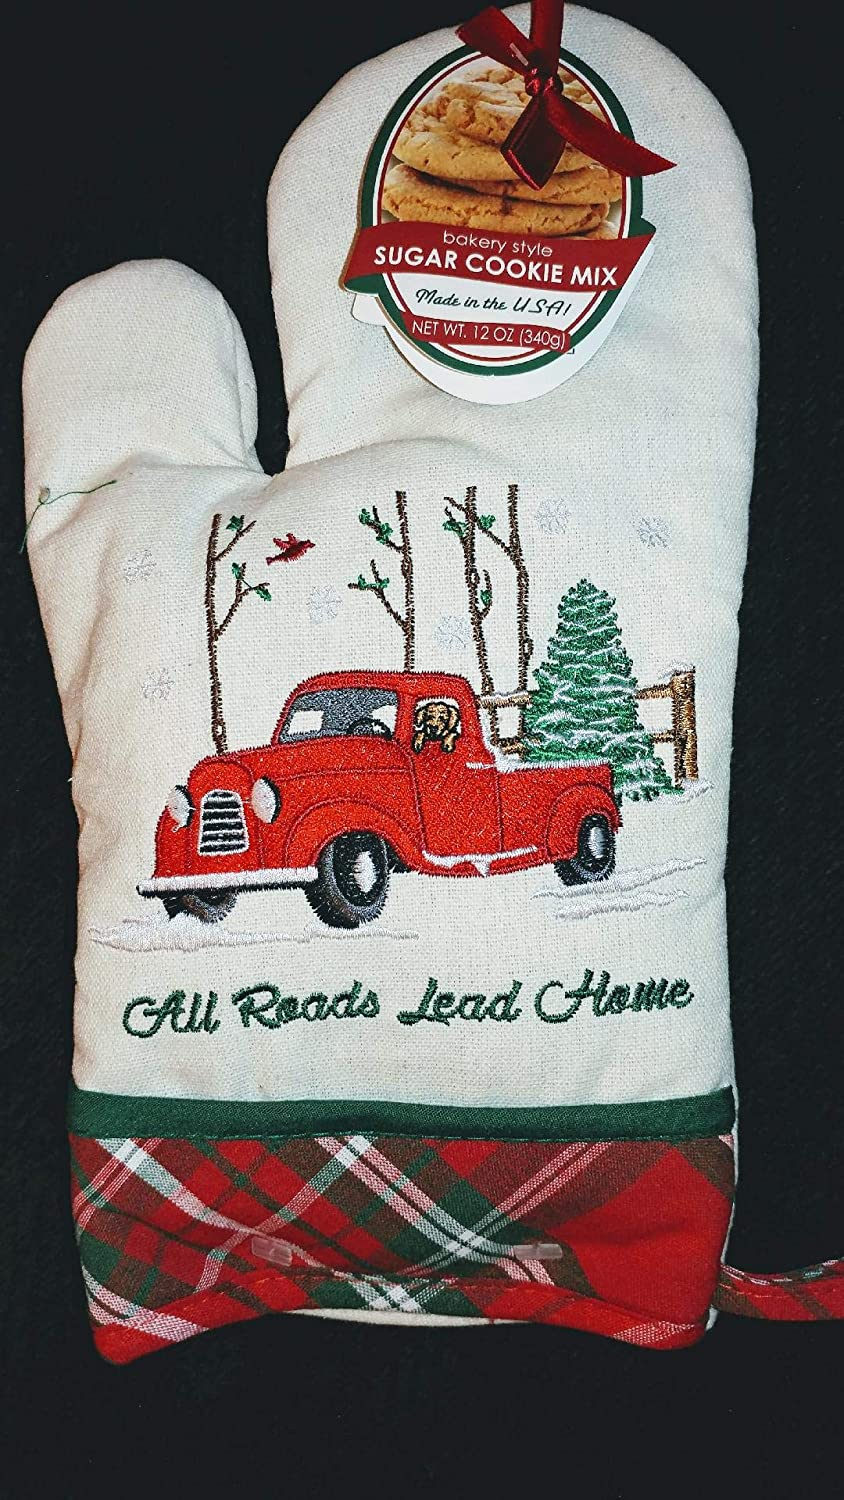 Christmas Oven Mitt All Roads Lead Home with cookie mix